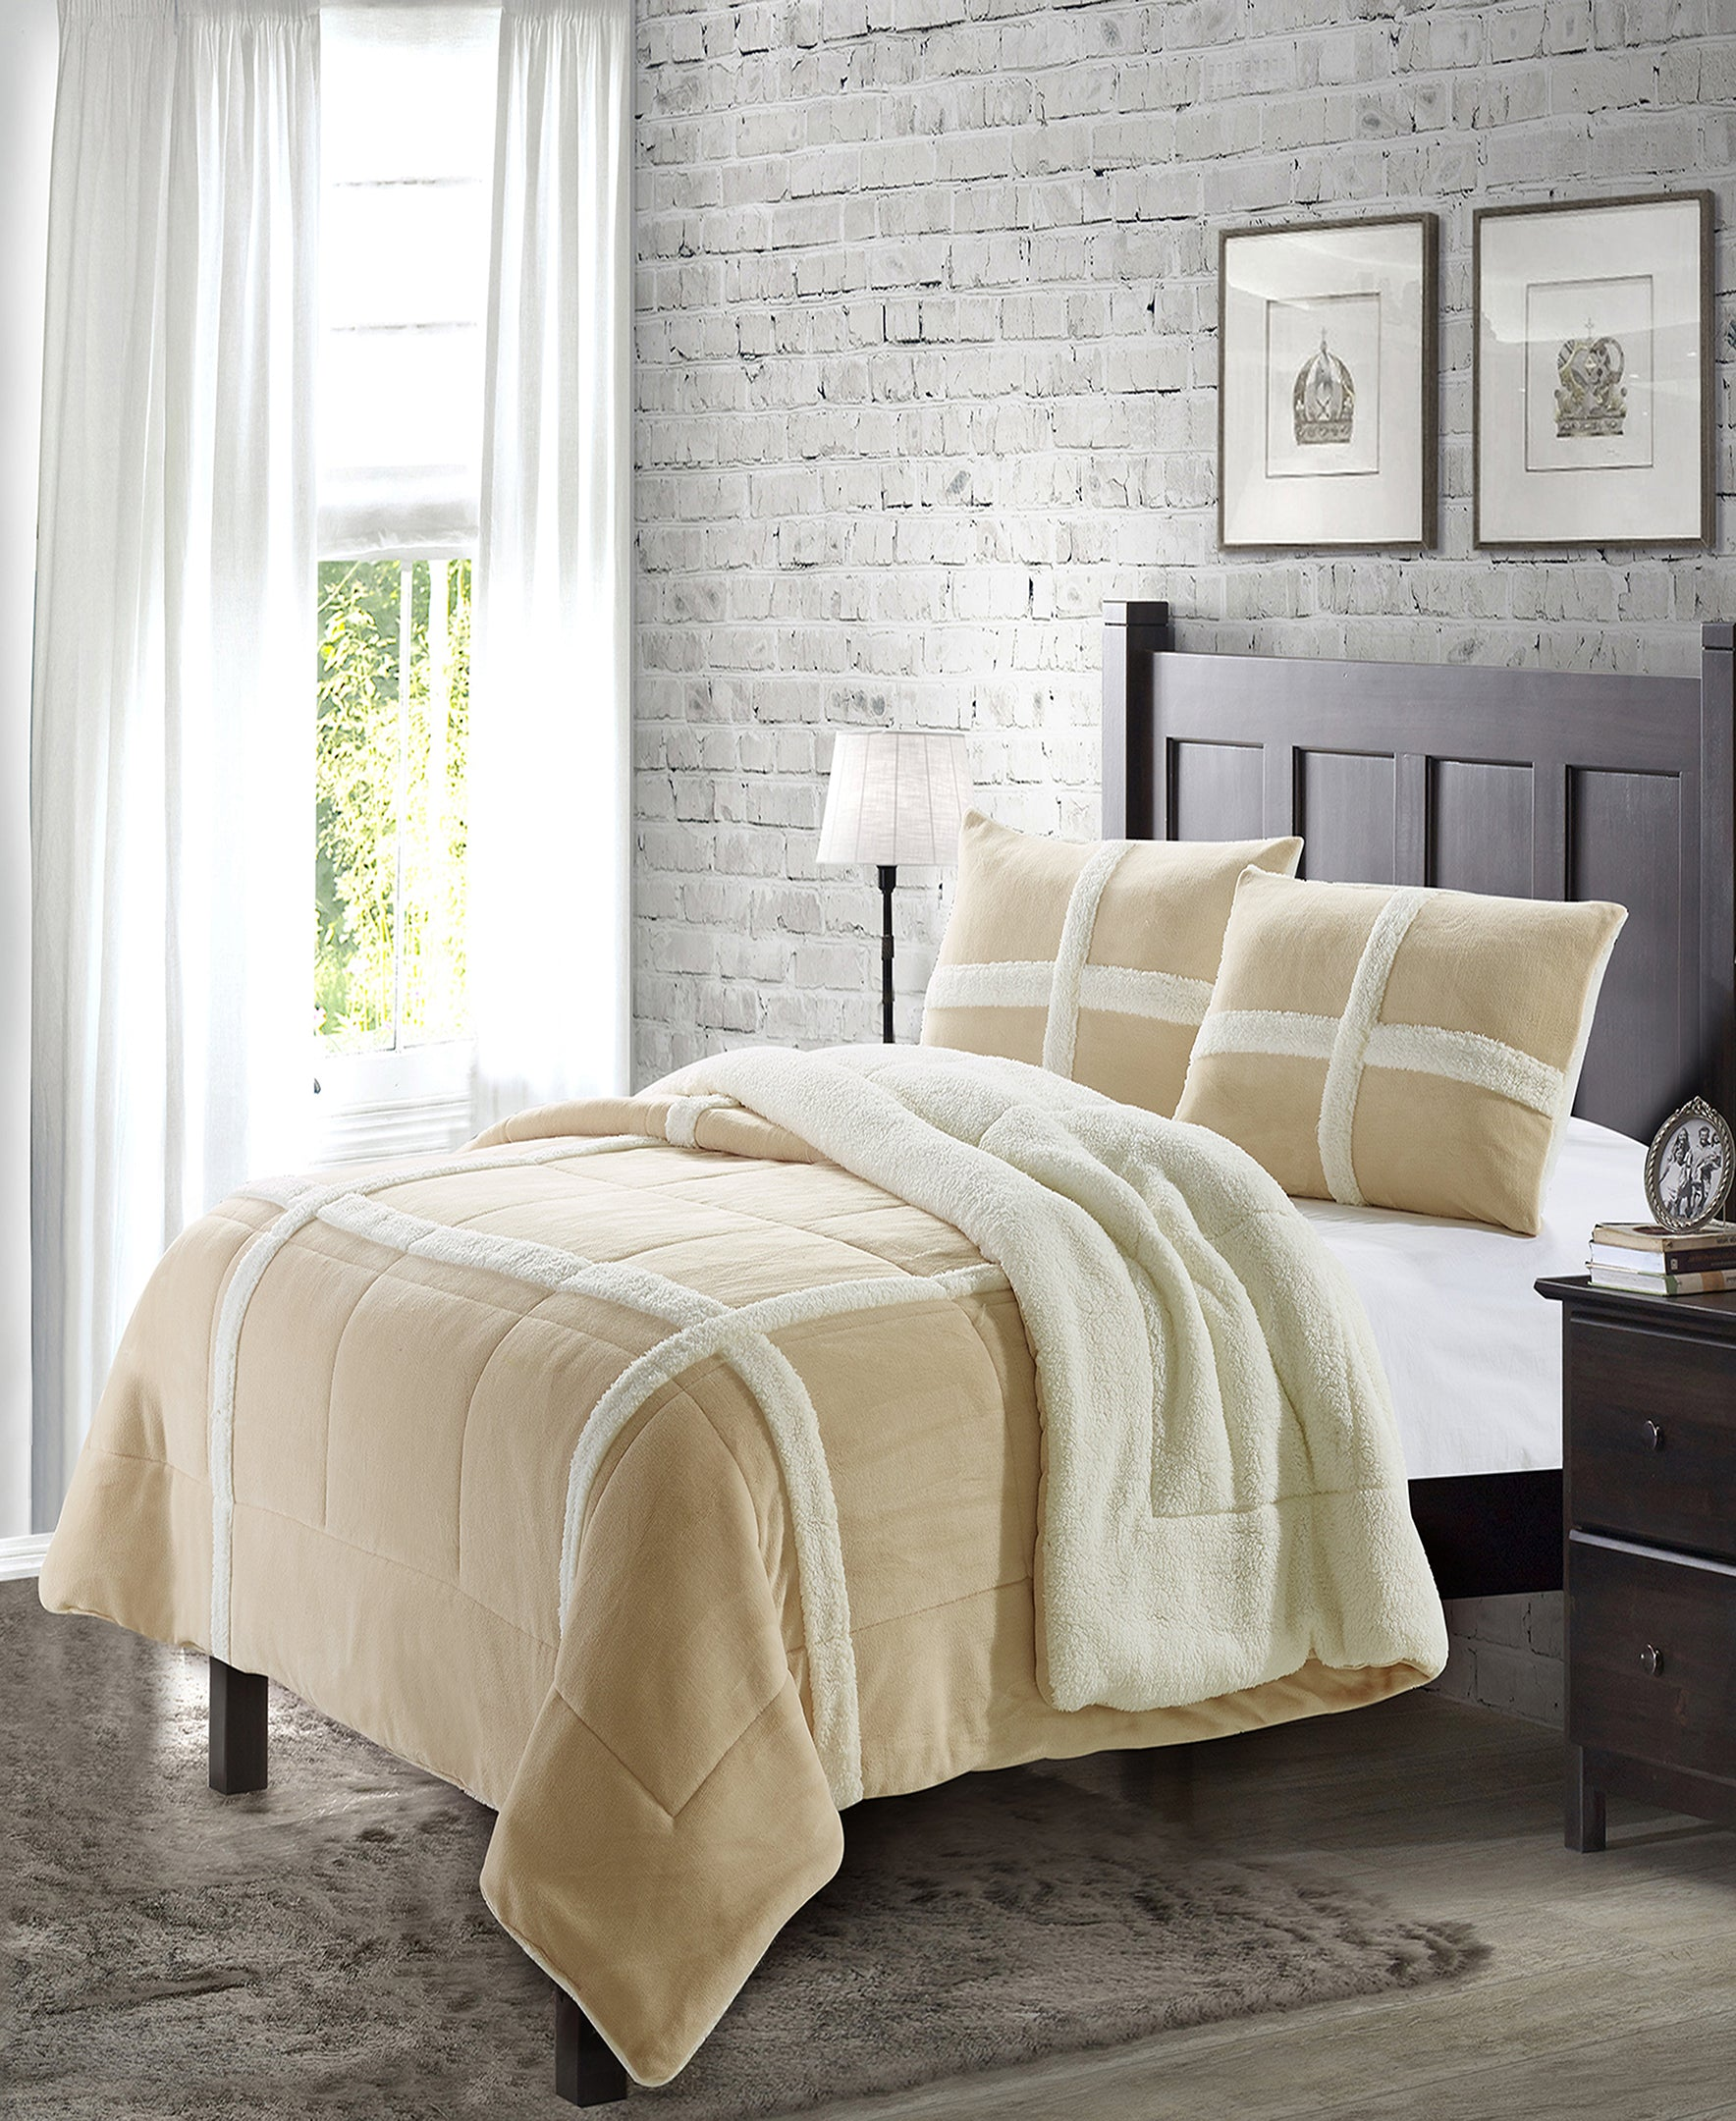 """Simple Elegance by Ben&Jonah 3 Piece King Size Flannel Blanket Set with Sherpa Backing (102"""" x 90"""") - Tan"""